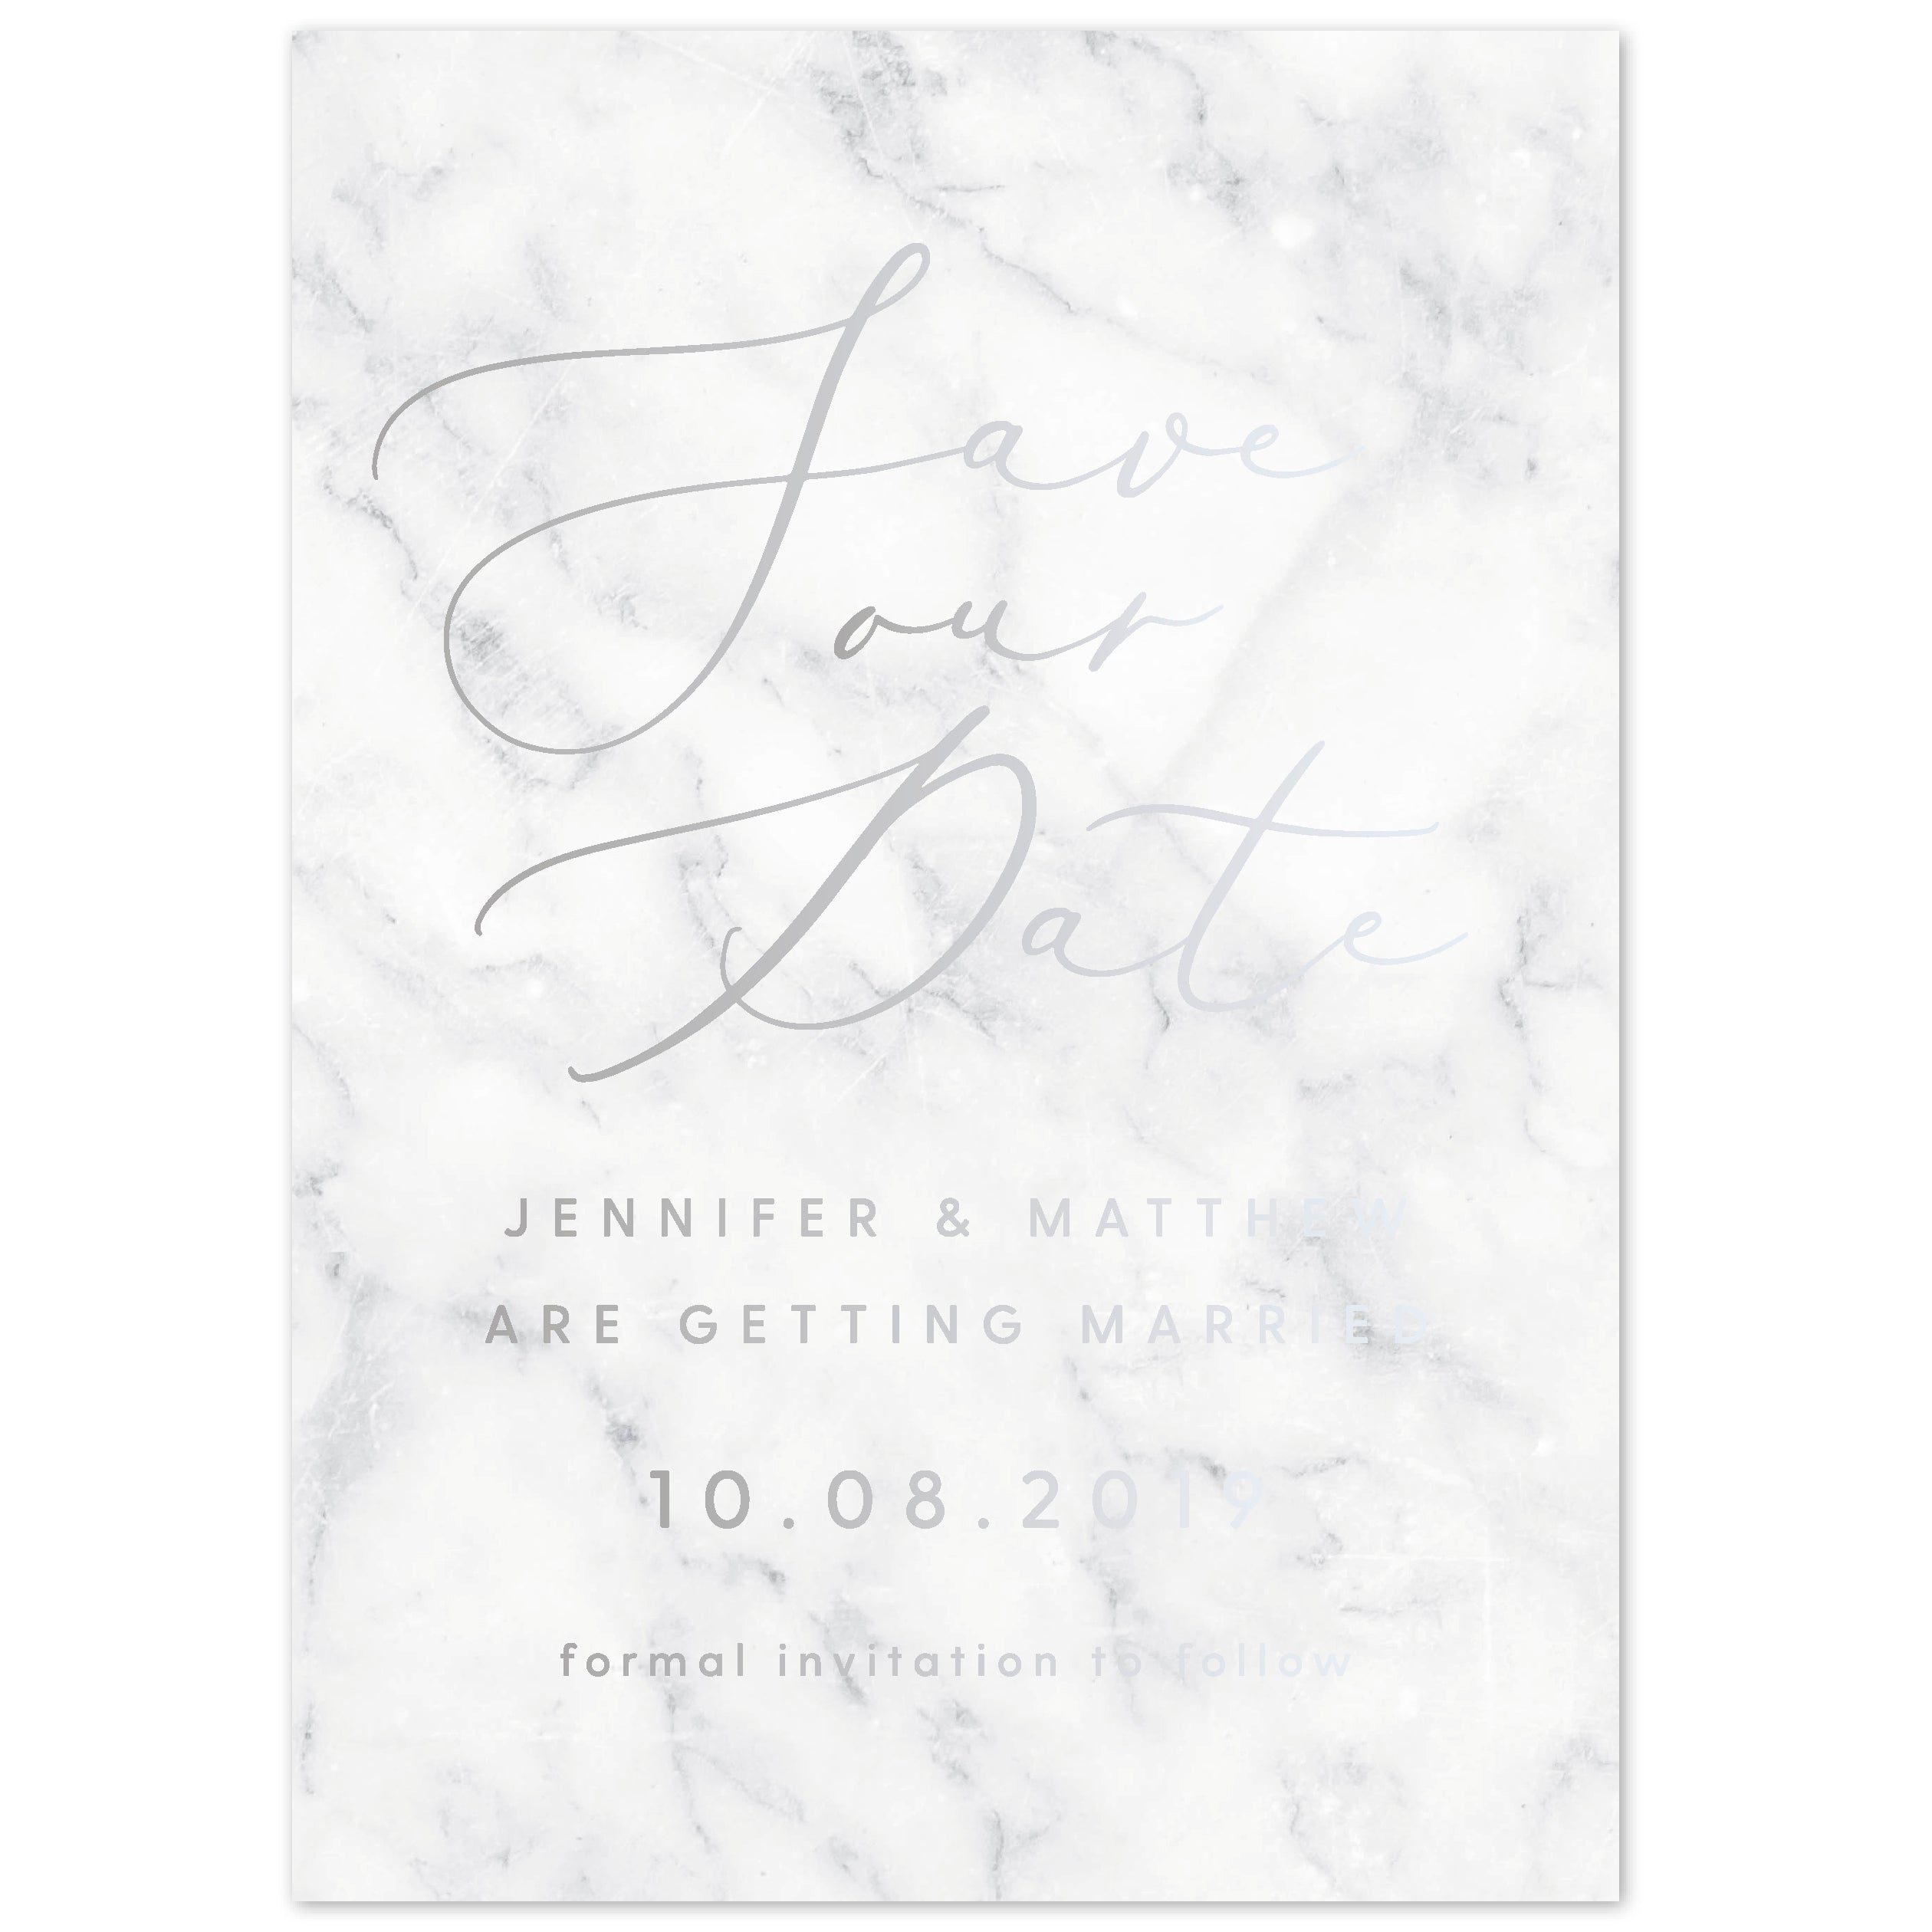 Marble foil save the date card